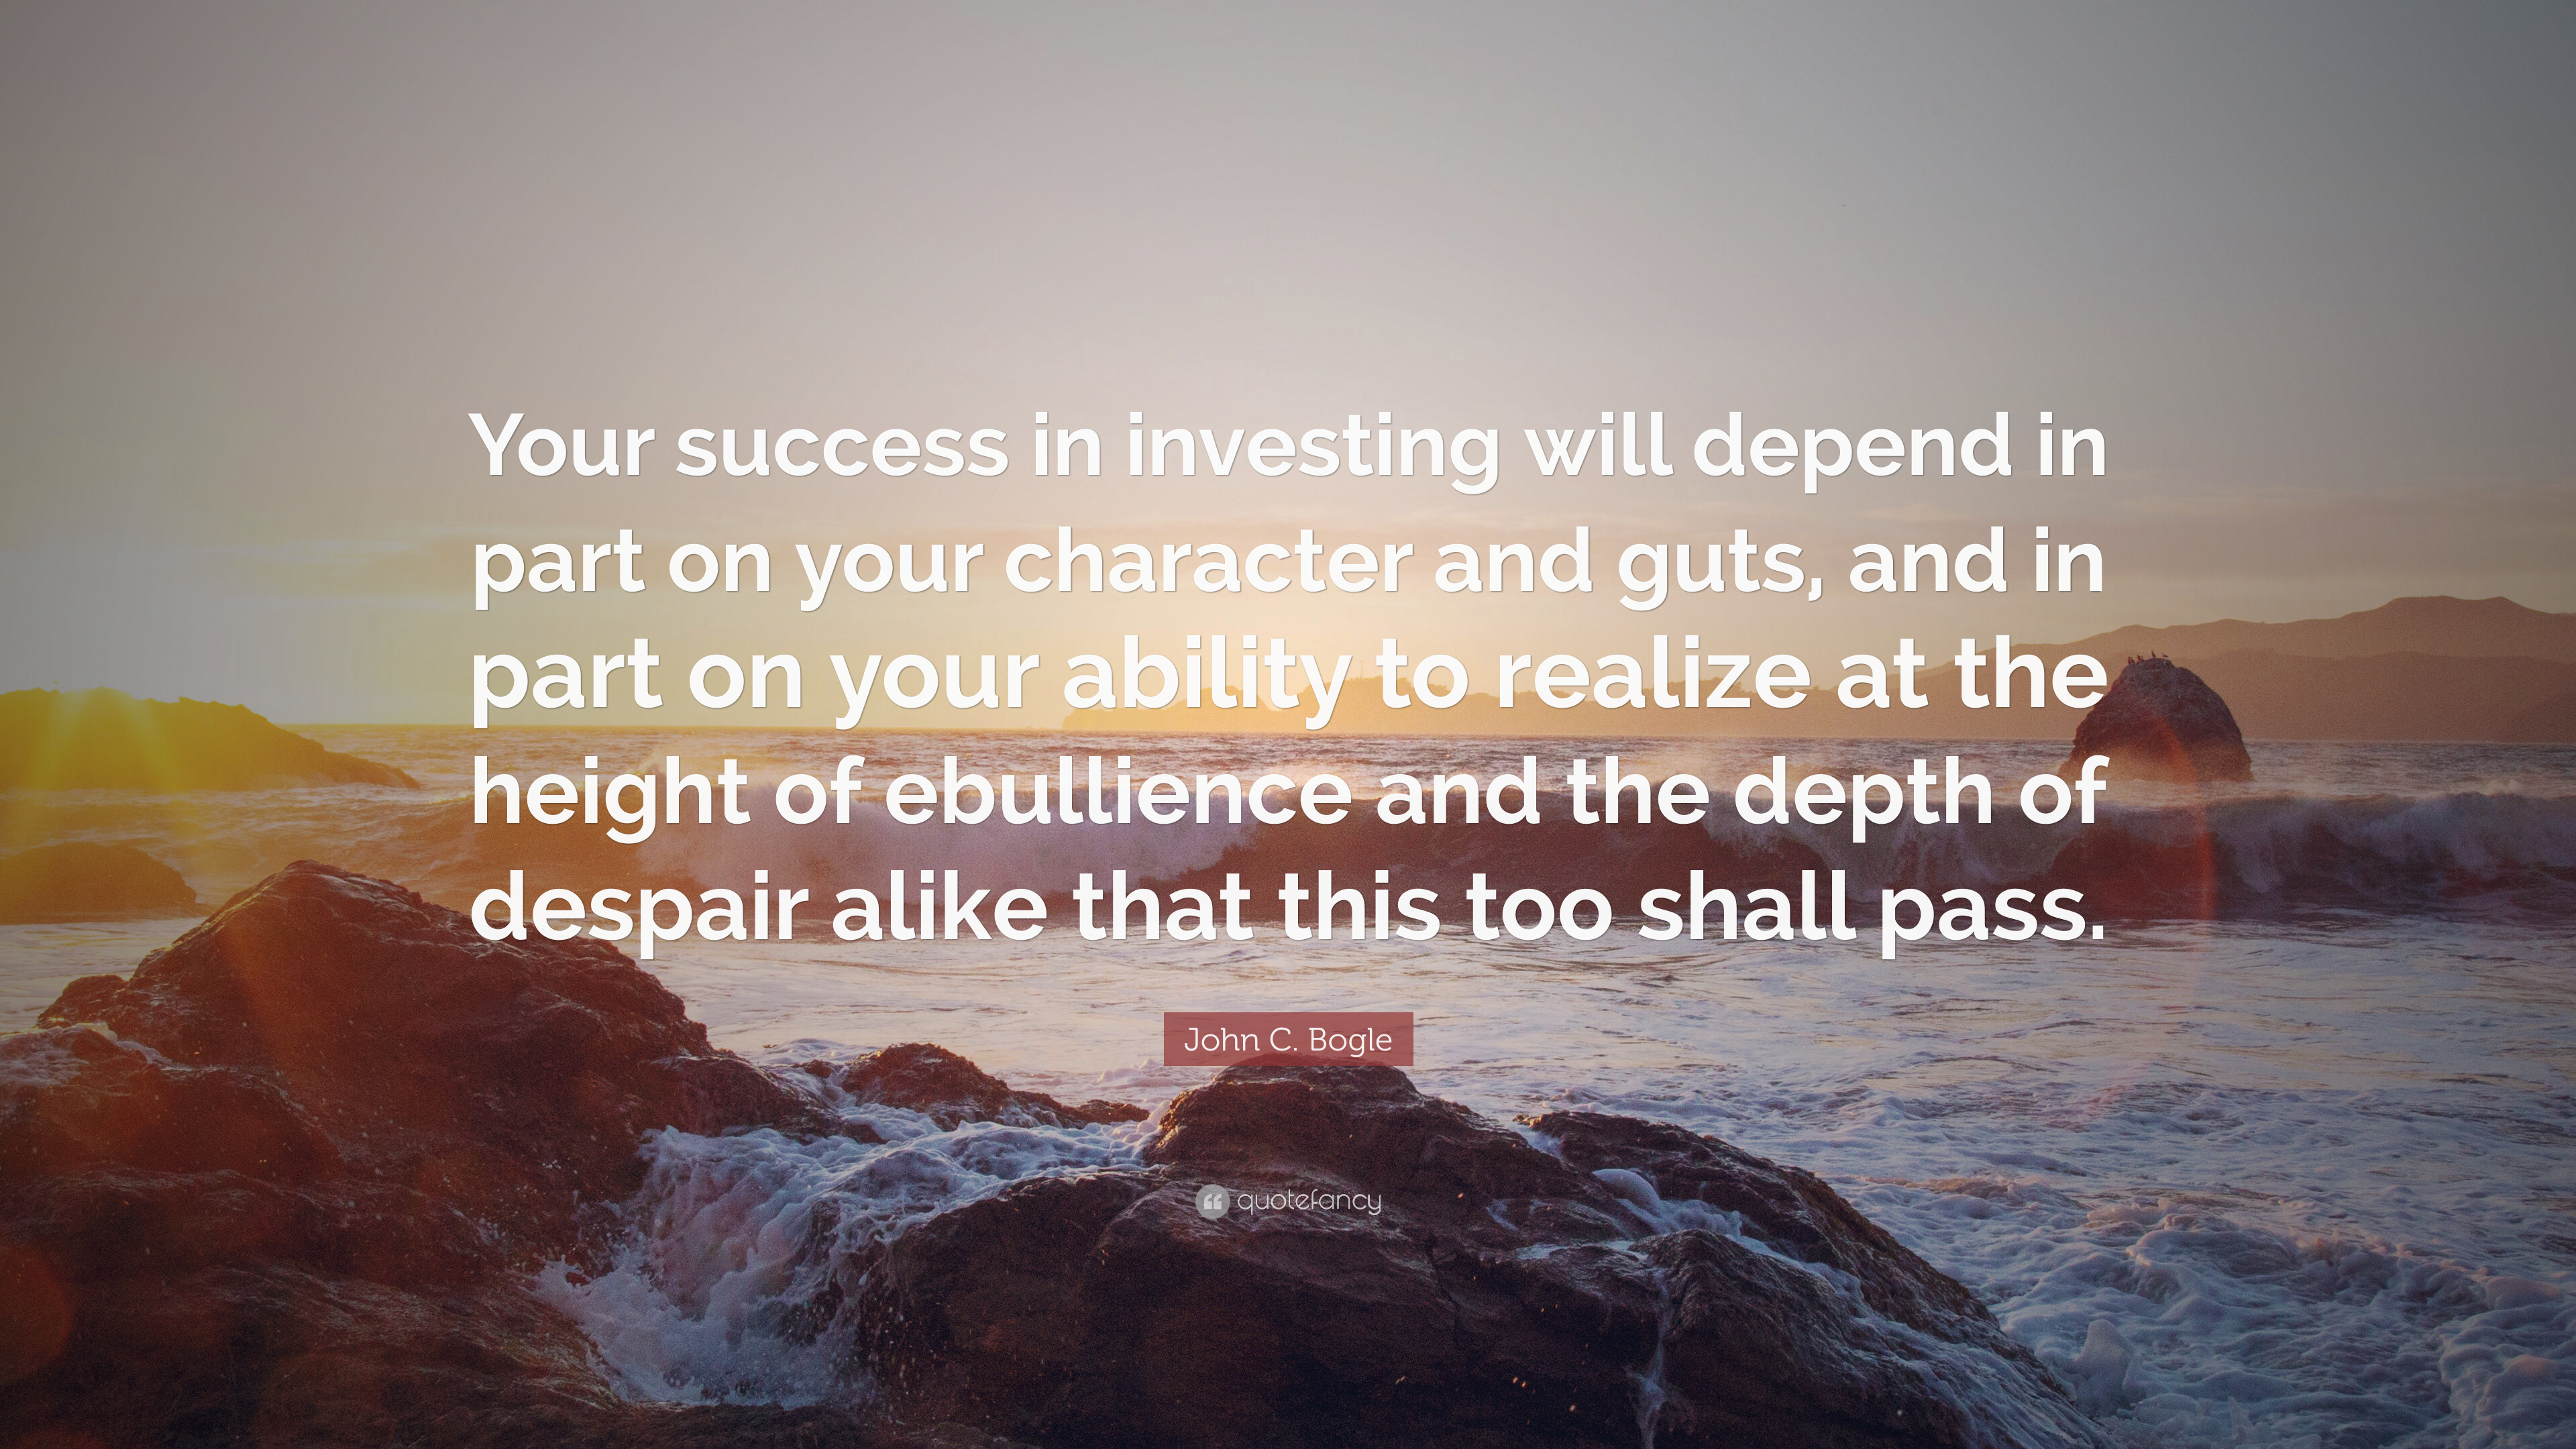 John C Bogle Quote Your Success In Investing Will Depend